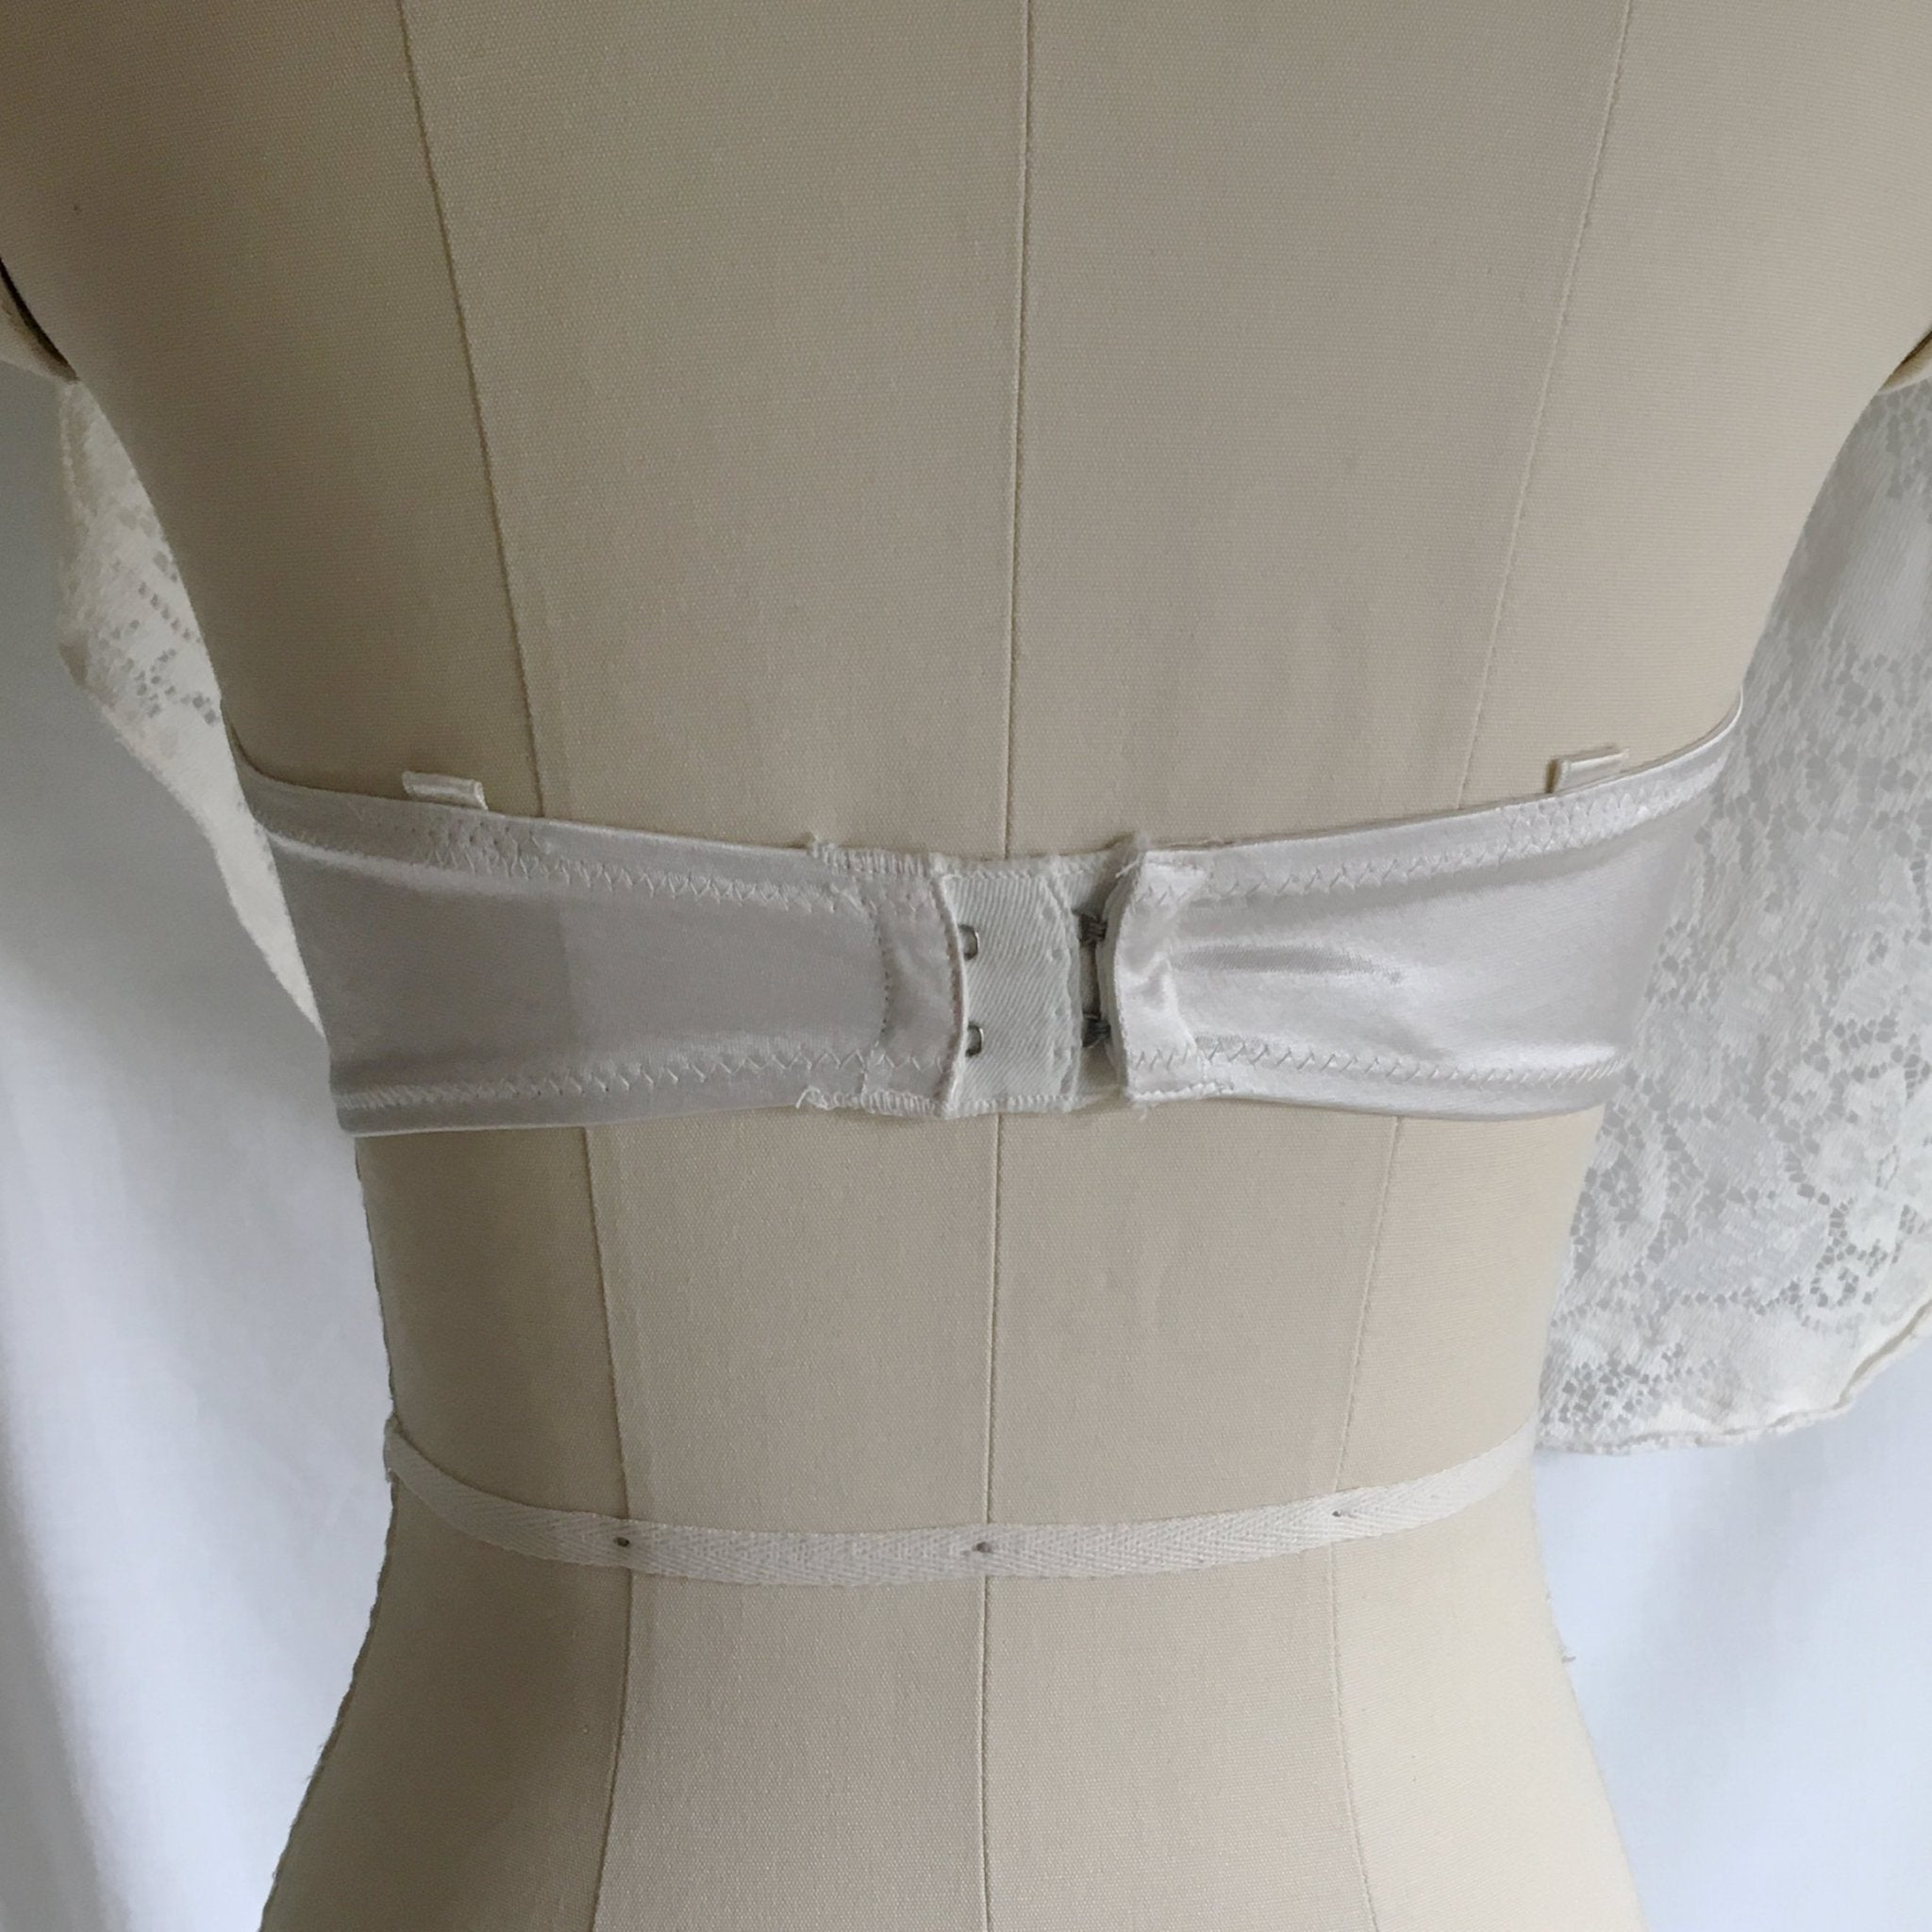 Vintage 1940's Monowire Bra | Sheer White Tulle Mesh with Ruffles & Satin | Lilly of France | Size 32 B, 32 C - Daggers & Dames